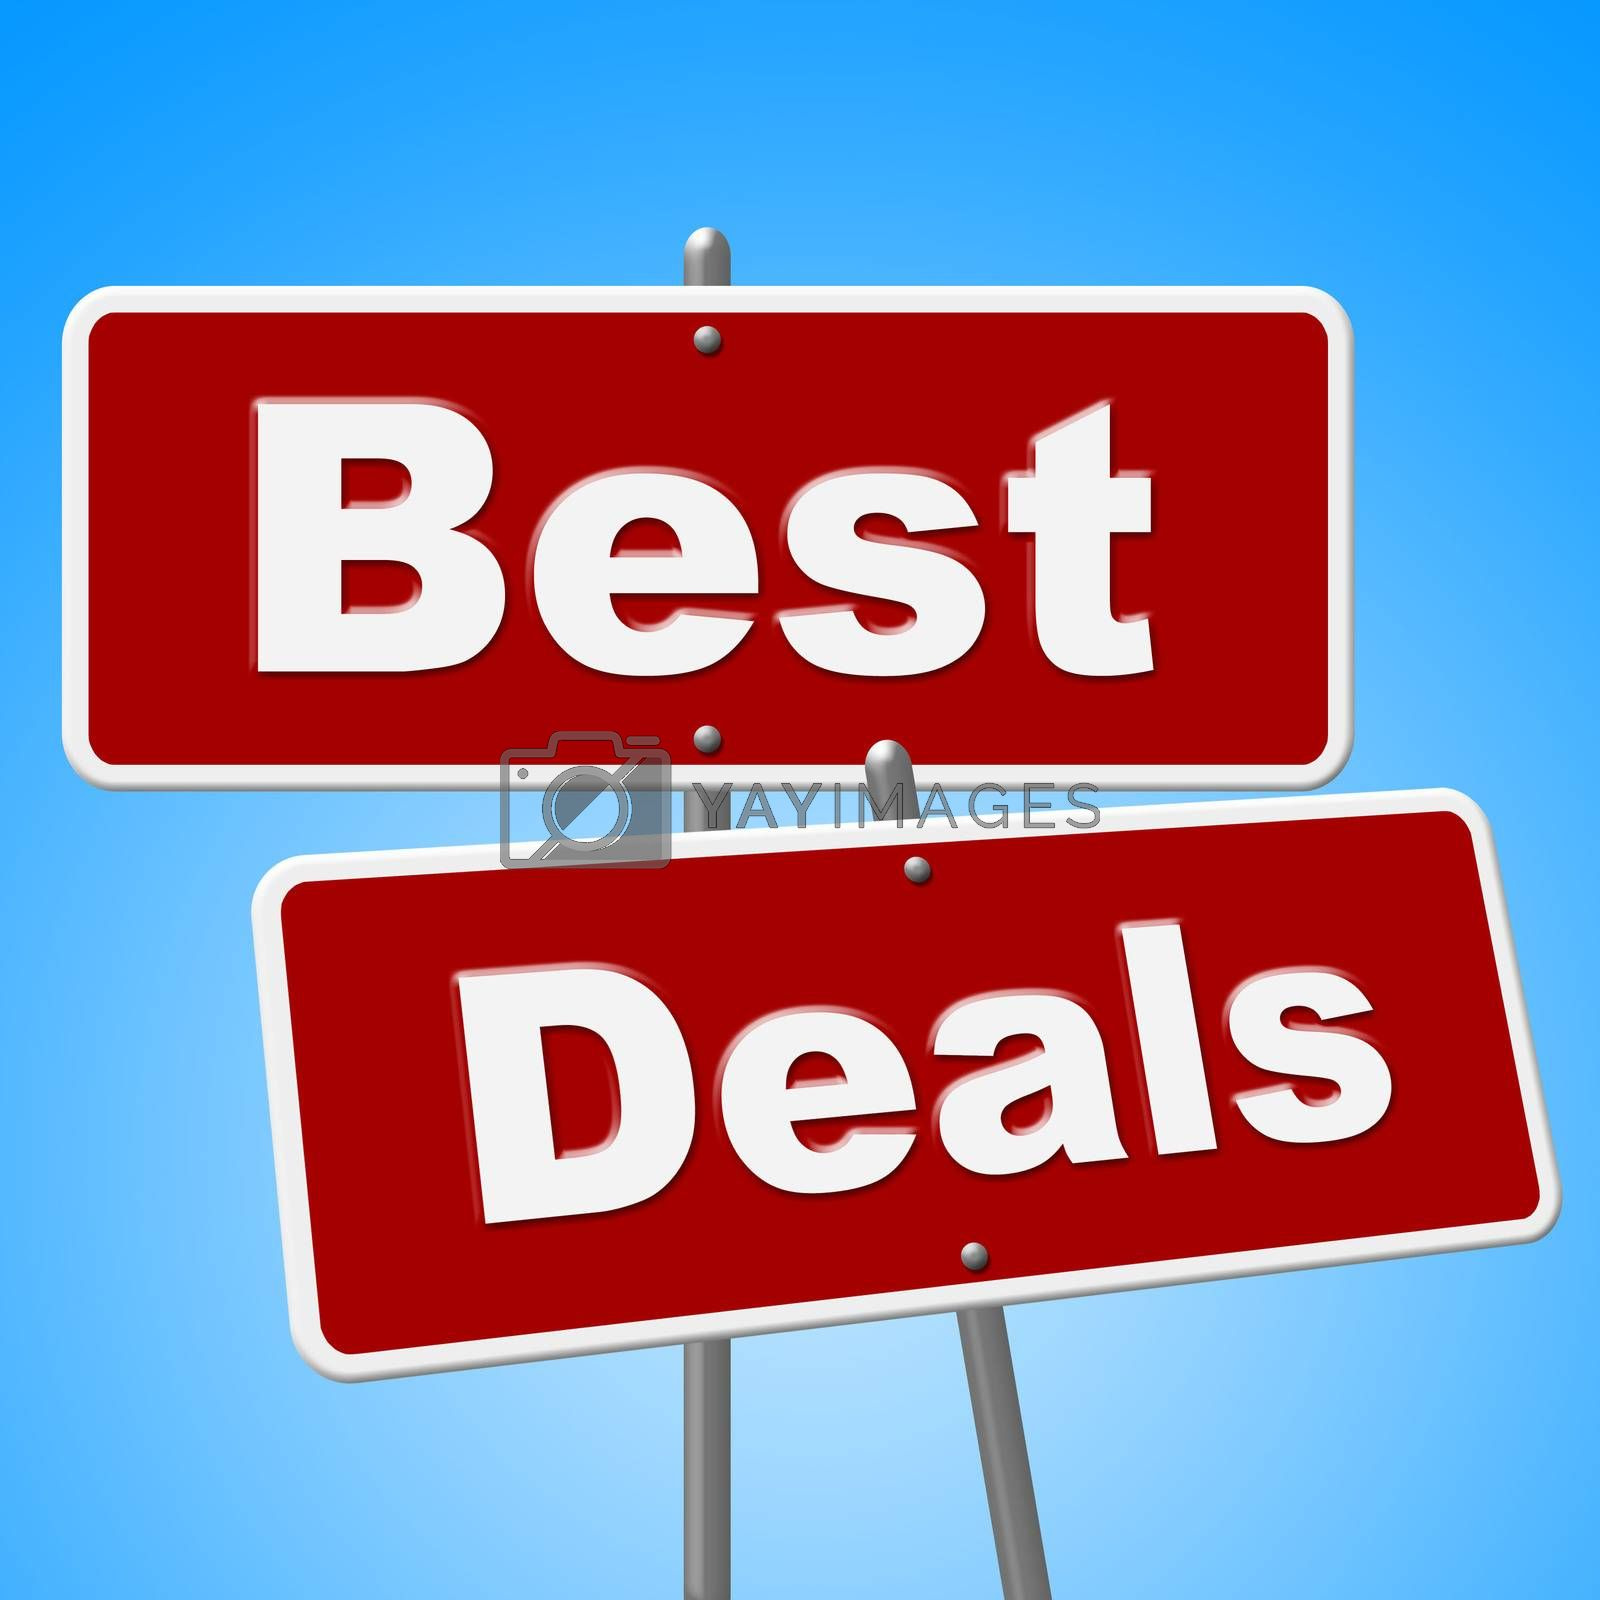 Best Deals Signs Shows Cheap Promotion And Sales by stuartmiles